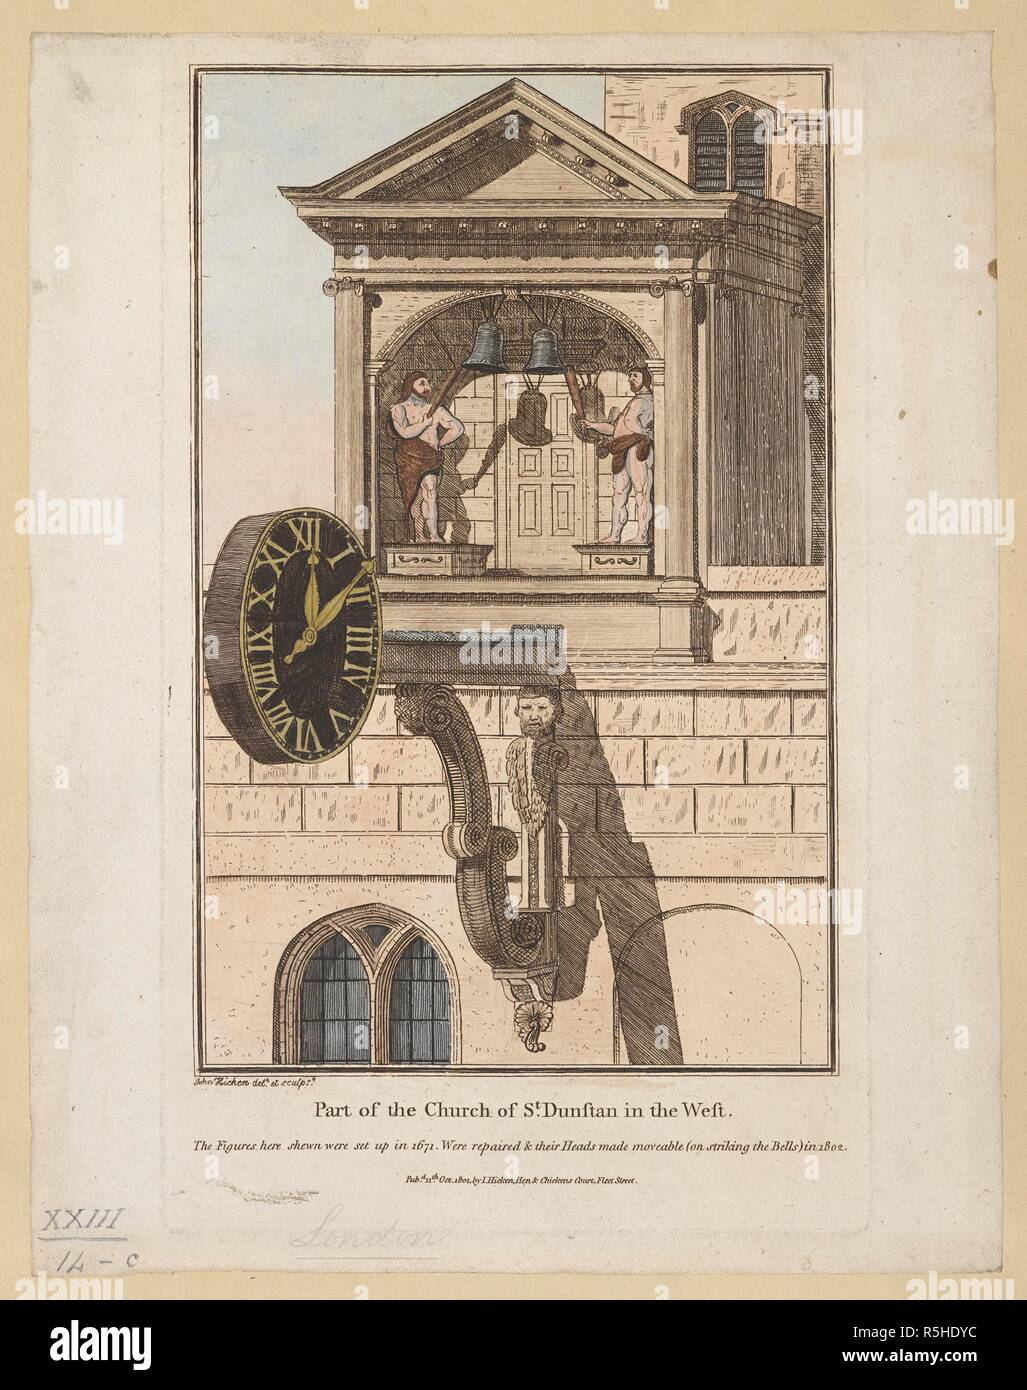 A clock mounted on a church wall above a window; the figures of two giants holding clubs on either side of bells; a pediment above. Part of the Church of St. Dunstan in the West : The Figures here shewn were set up in 1671. Were repaired & their Heads made moveable (on striking the Bells) in 1802 /. [London] : Pubd 11th Oct 1802 by I. Hicken, Hen & Chickens Court, Fleet Street, [October 11 1802]. Source: Maps K.Top.23.14.c. Language: English. Stock Photo